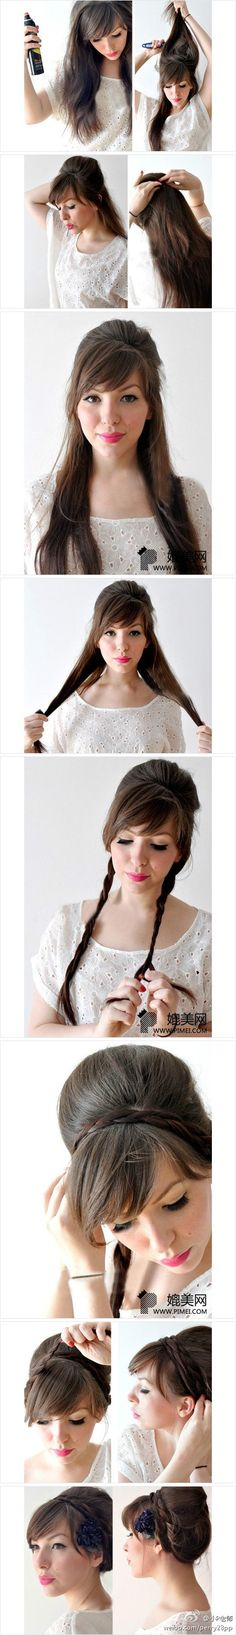 long hair braided up-do.